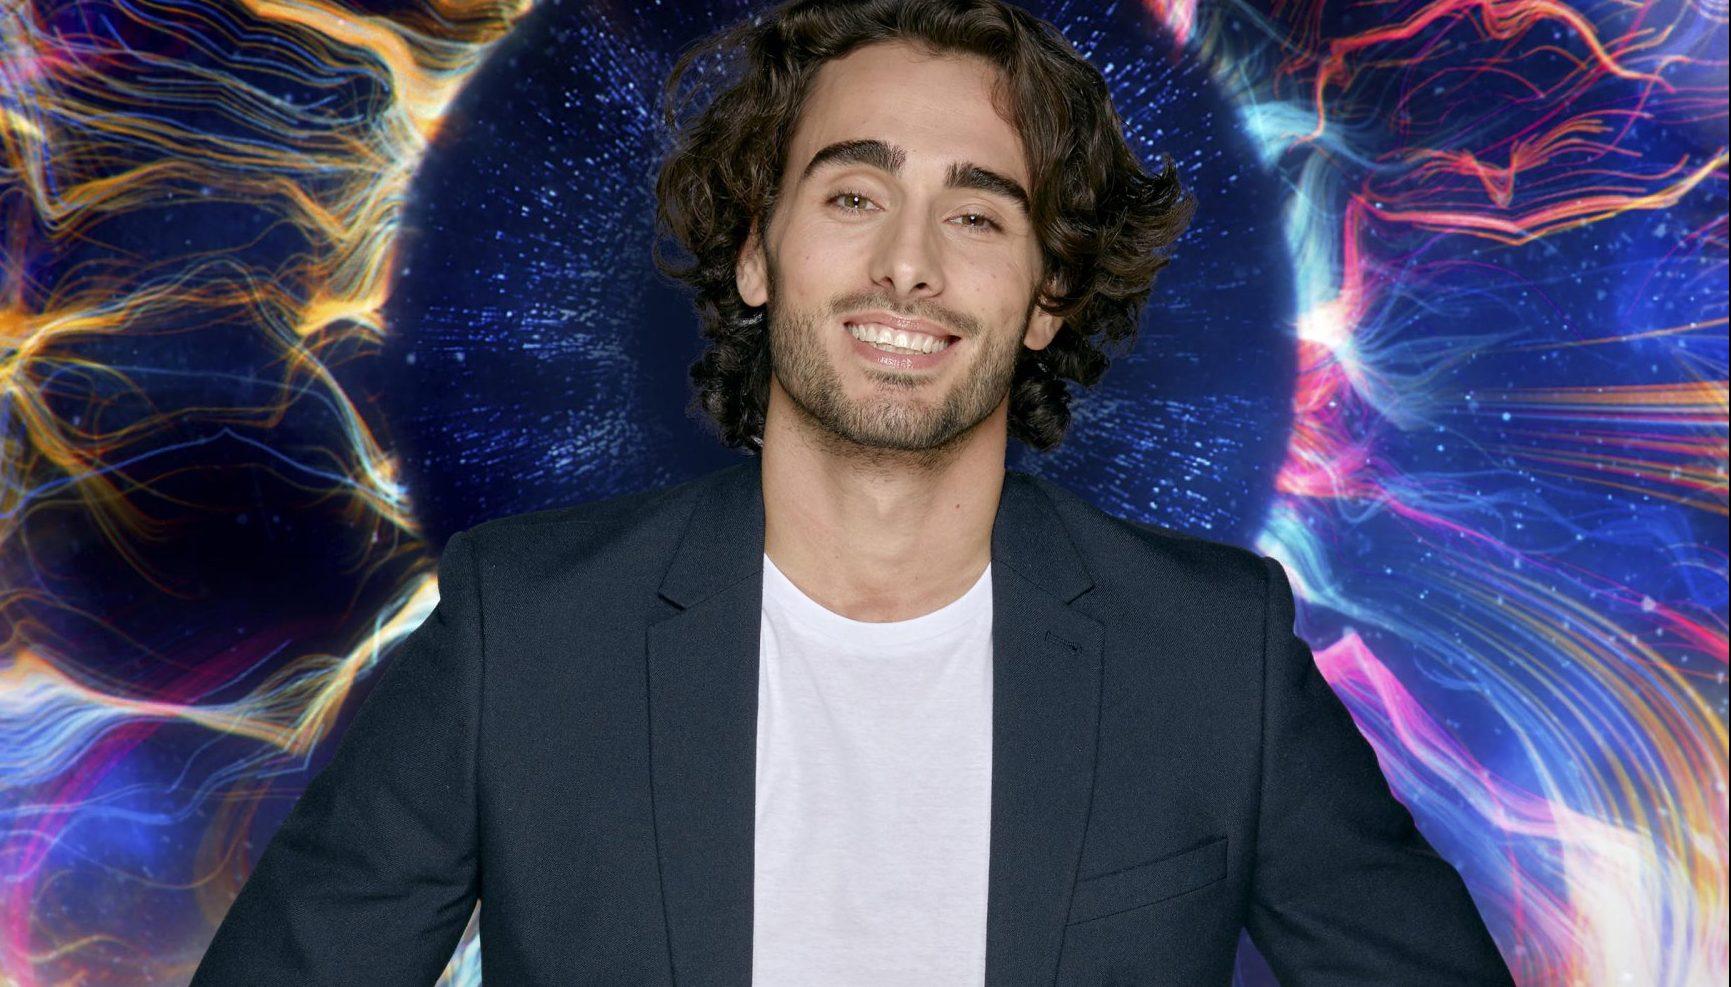 Big Brother viewers fume as Lewis Flanagan's exit reason is not aired amid 'Auschwitz comment' rumours